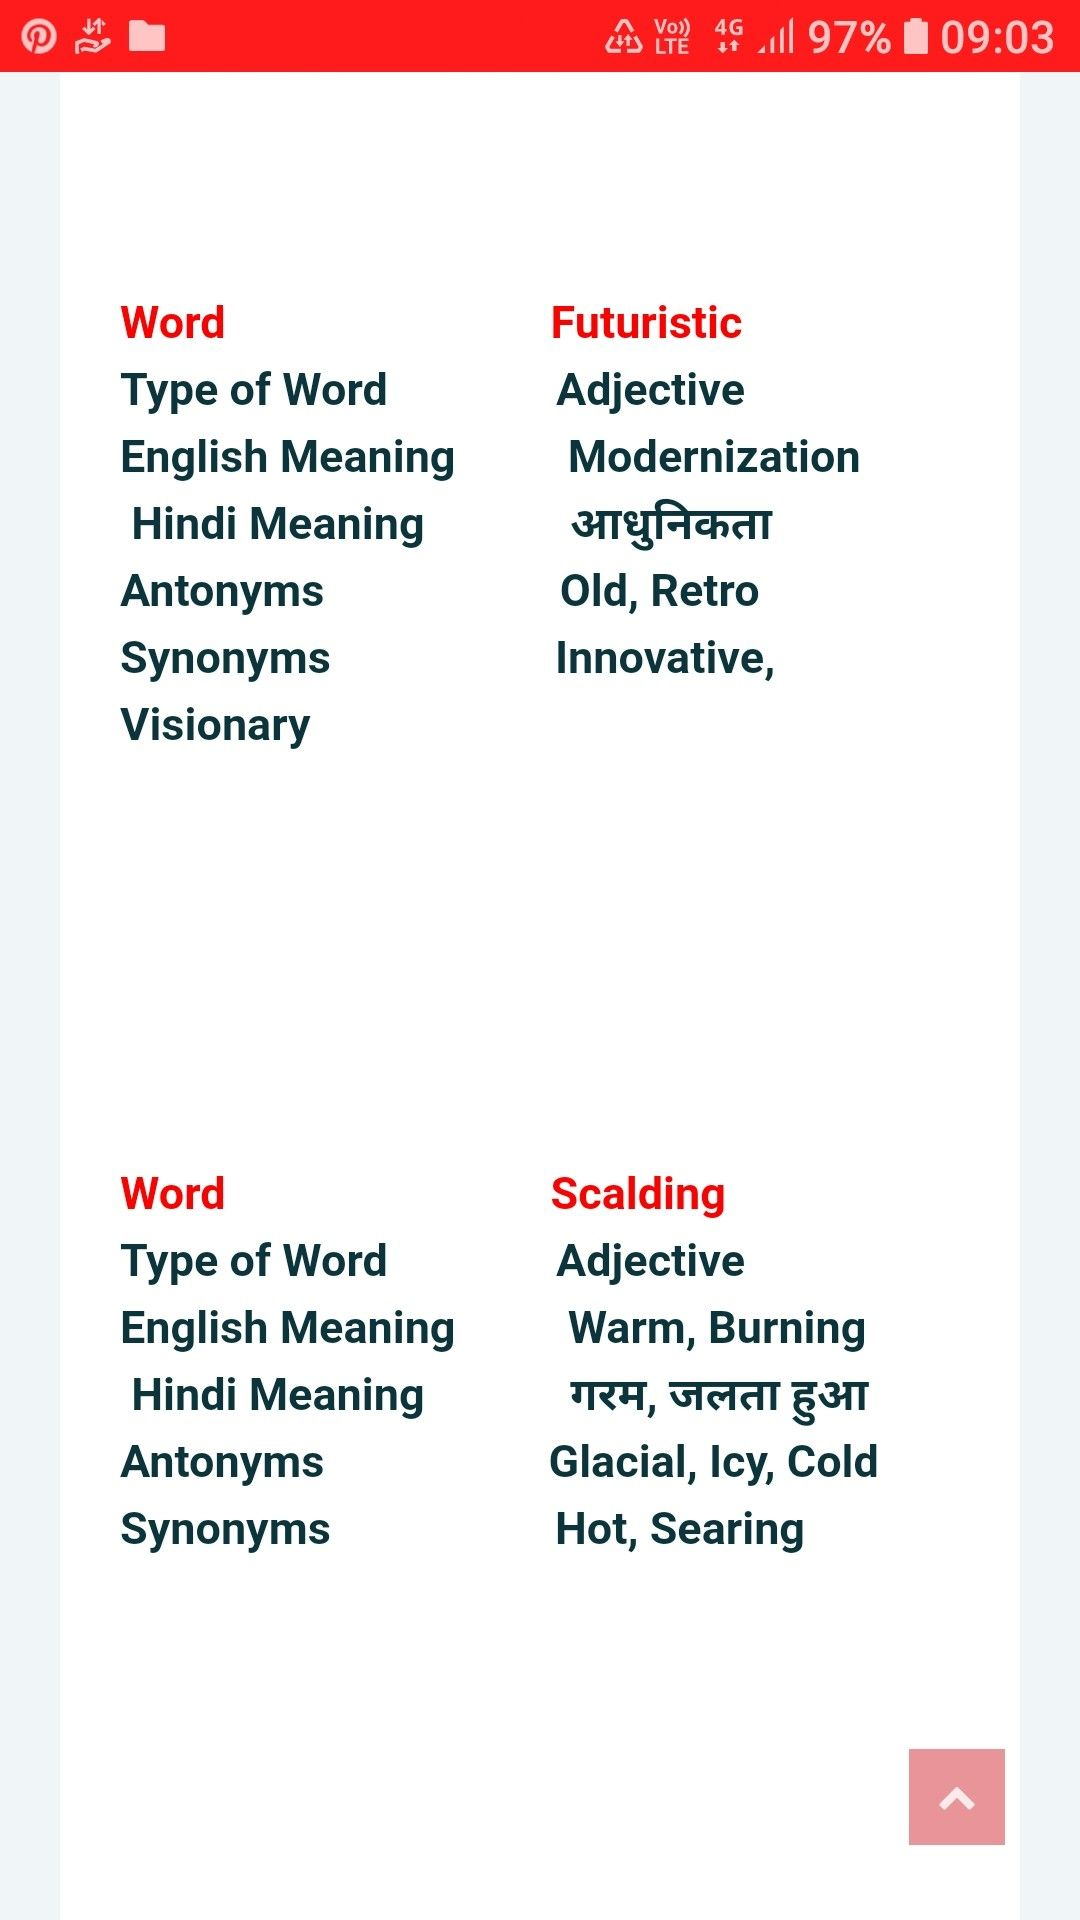 Important English Words Synonyms And Antonyms English Words Words